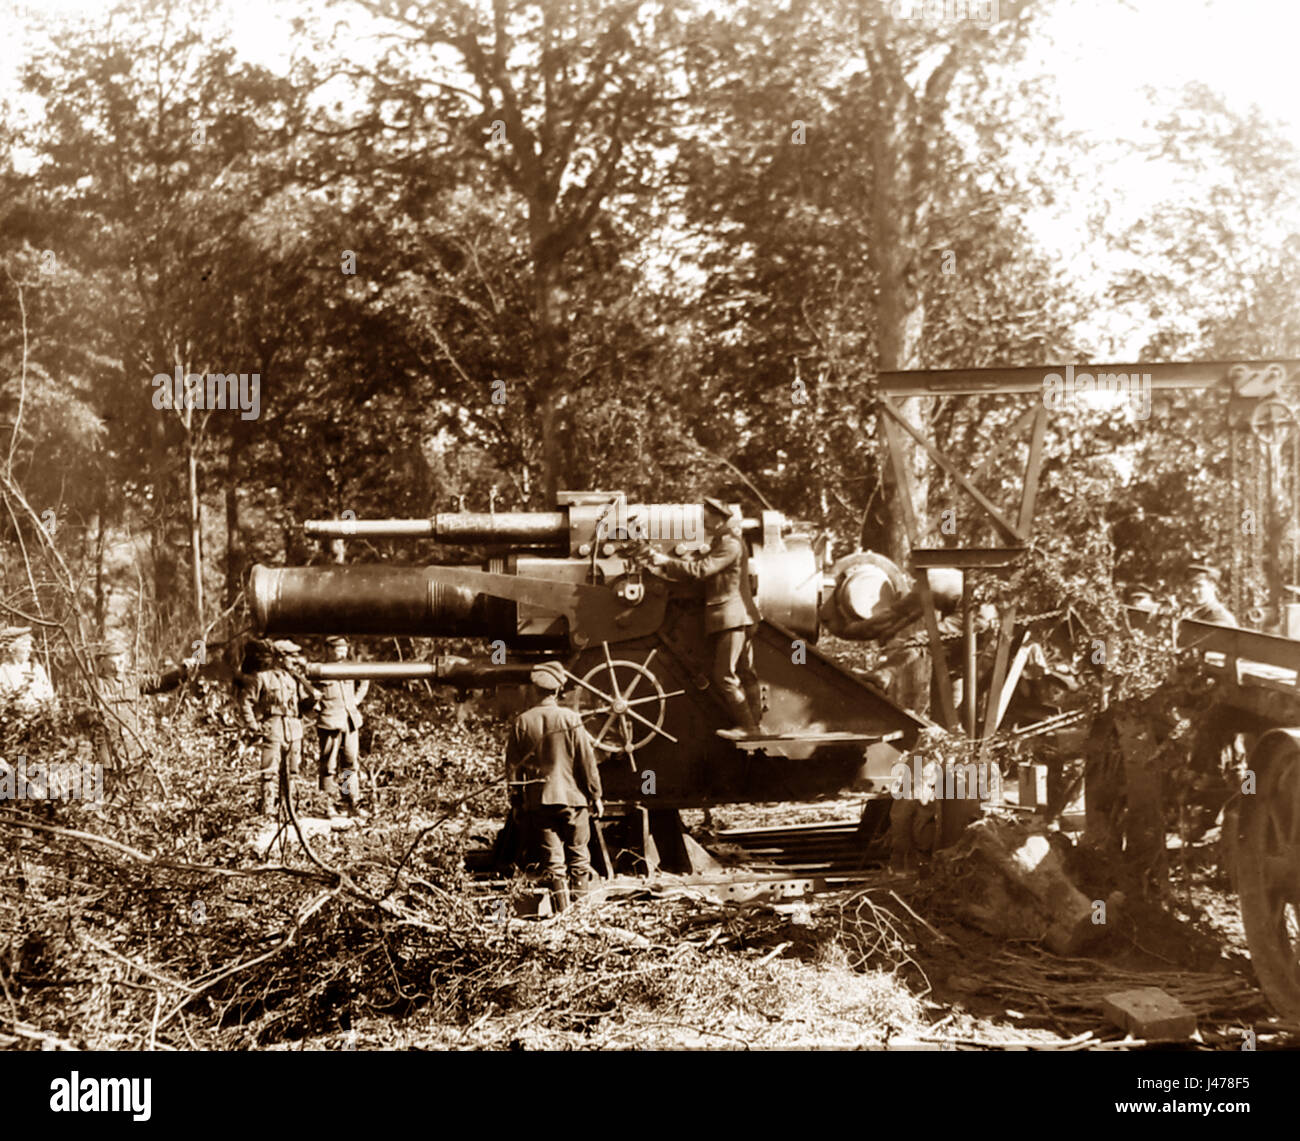 WW1 - Battle of Albert, France - 15 inch Howitzer in action - July 1916 Stock Photo